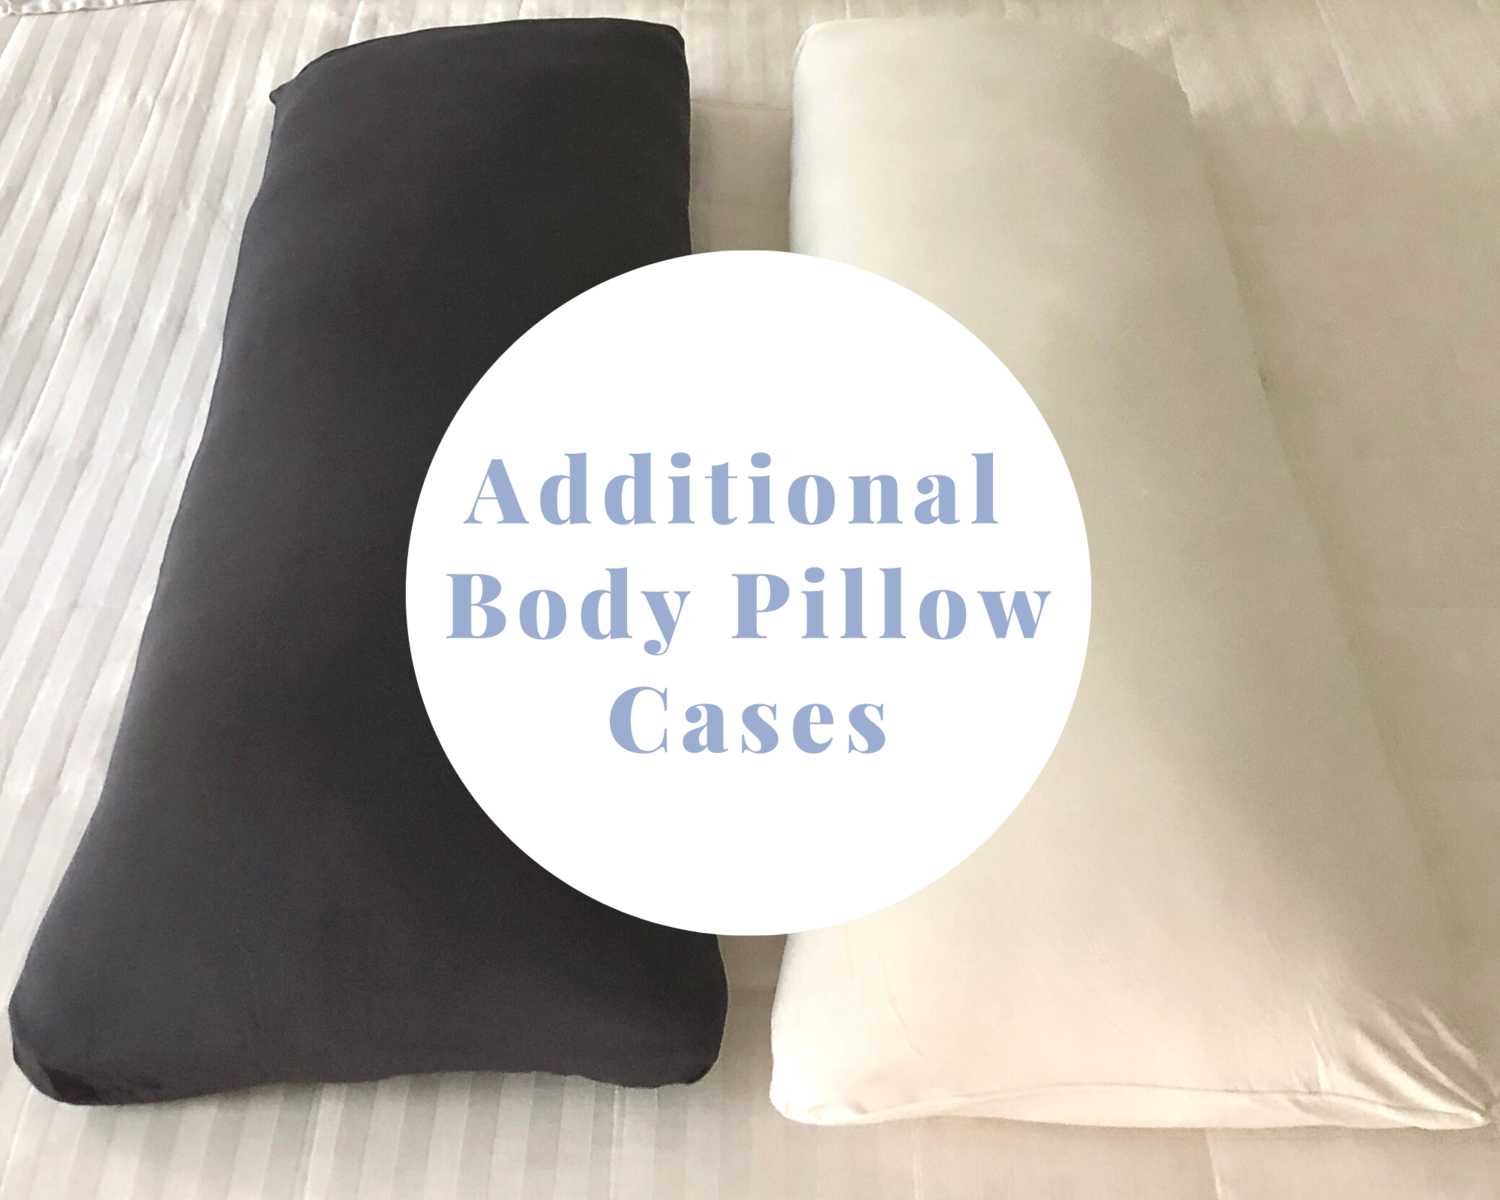 Additional Noble Body Pillow Cases